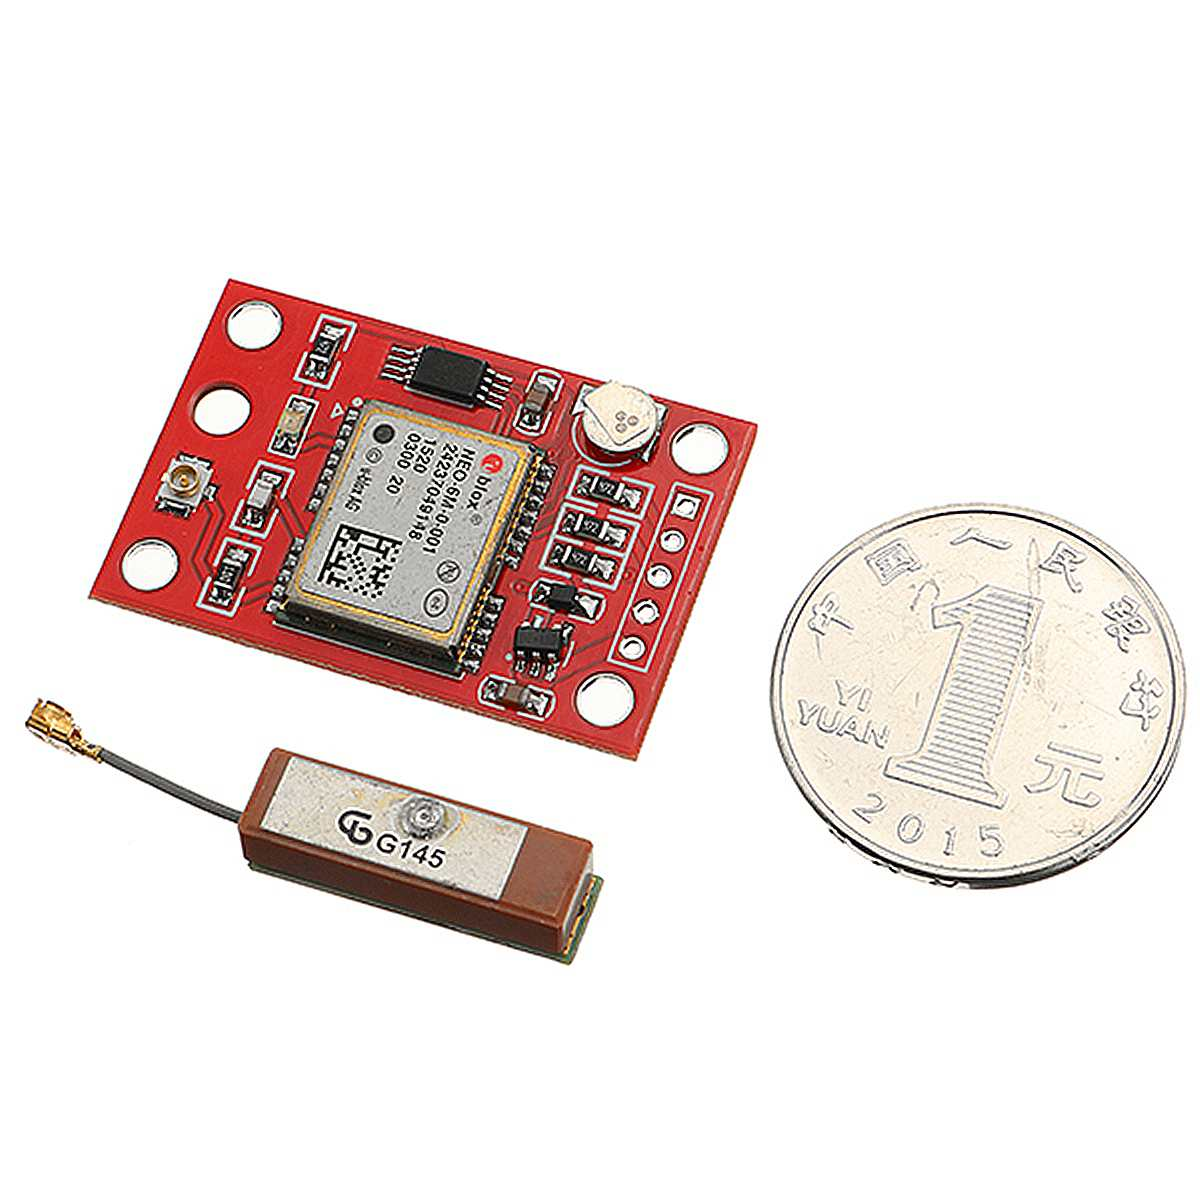 GY GPS Module Board 9600 Baud Rate With Antenna For Arduino 3V-5V Mini Size With Strong Signal